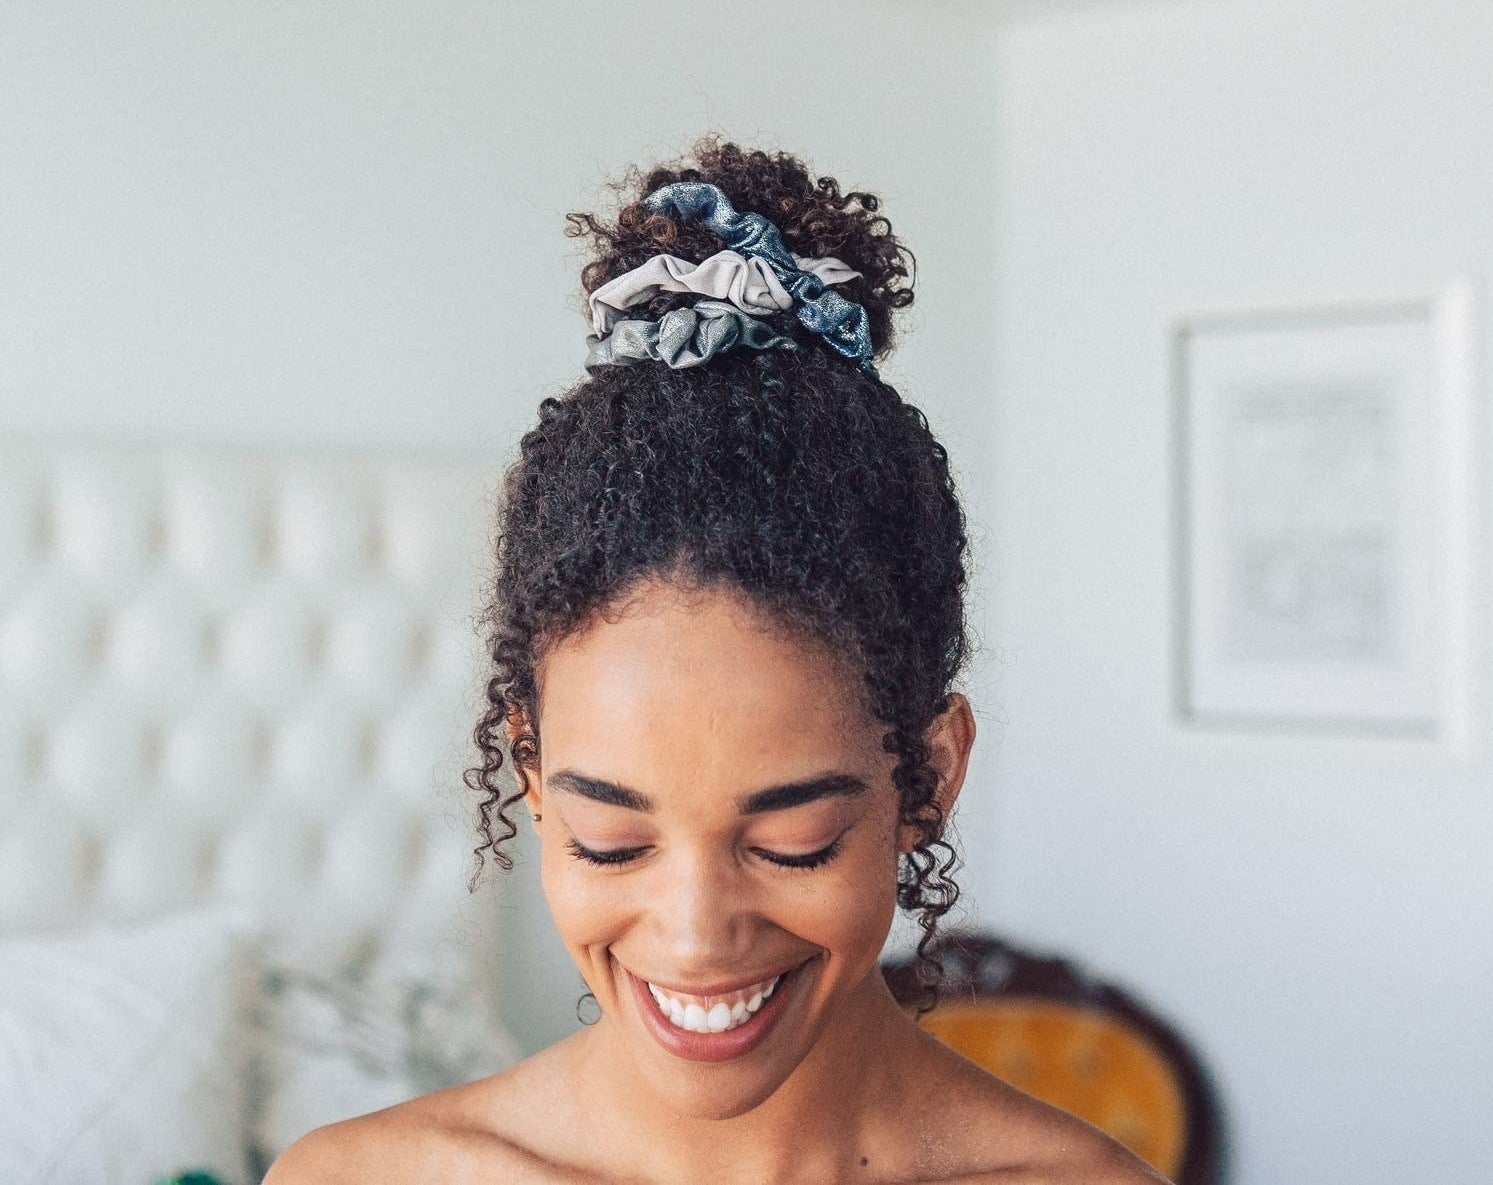 A smiling person wears the scrunchies in a high bun